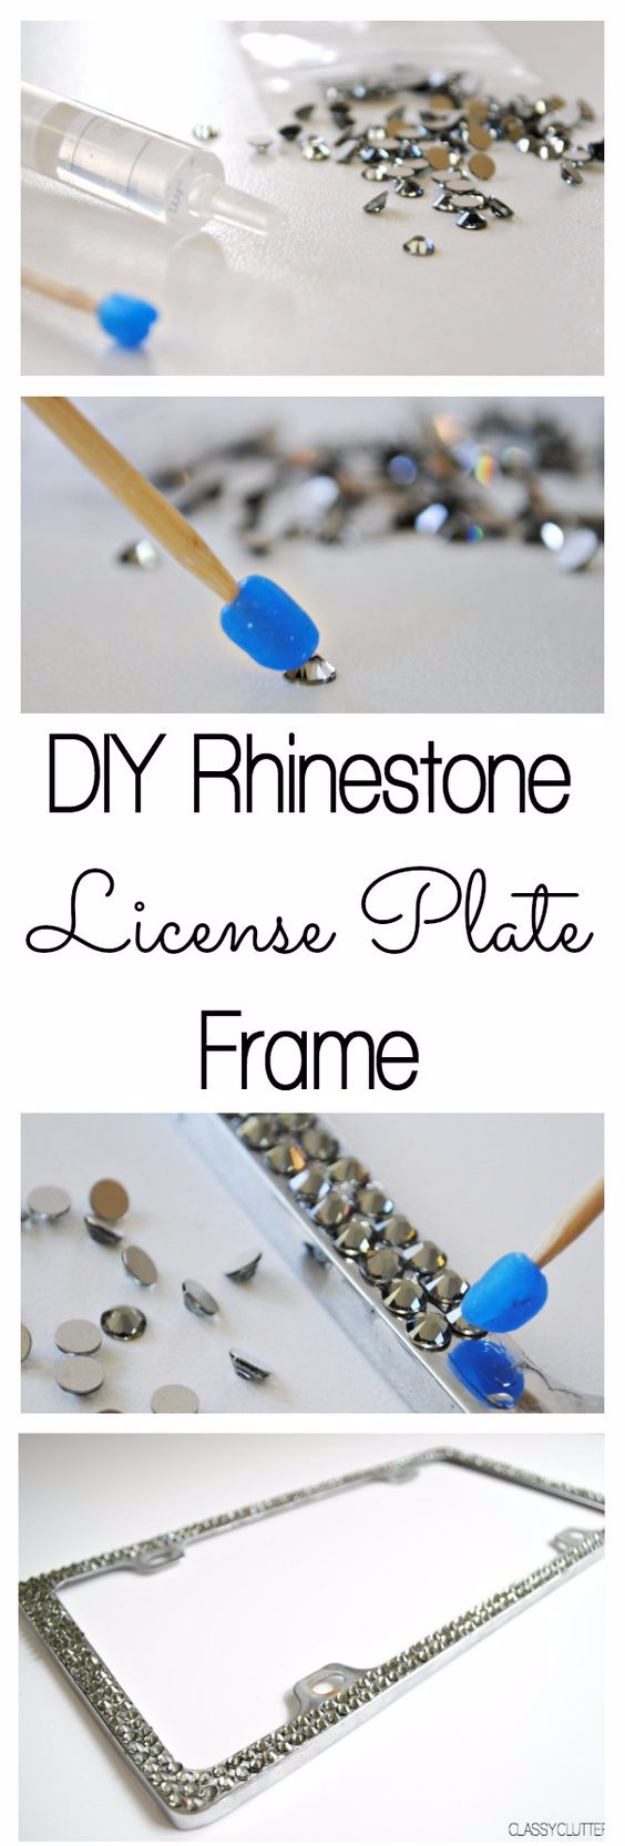 DIY Car Accessories and Ideas for Cars - DIY Rhinestone License Plate Frame - Interior and Exterior, Seats, Mirror, Seat Covers, Storage, Carpet and Window Cleaners and Products - Decor, Keys and Iphone and Tablet Holders - DIY Projects and Crafts for Women and Men http://diyjoy.com/diy-ideas-car